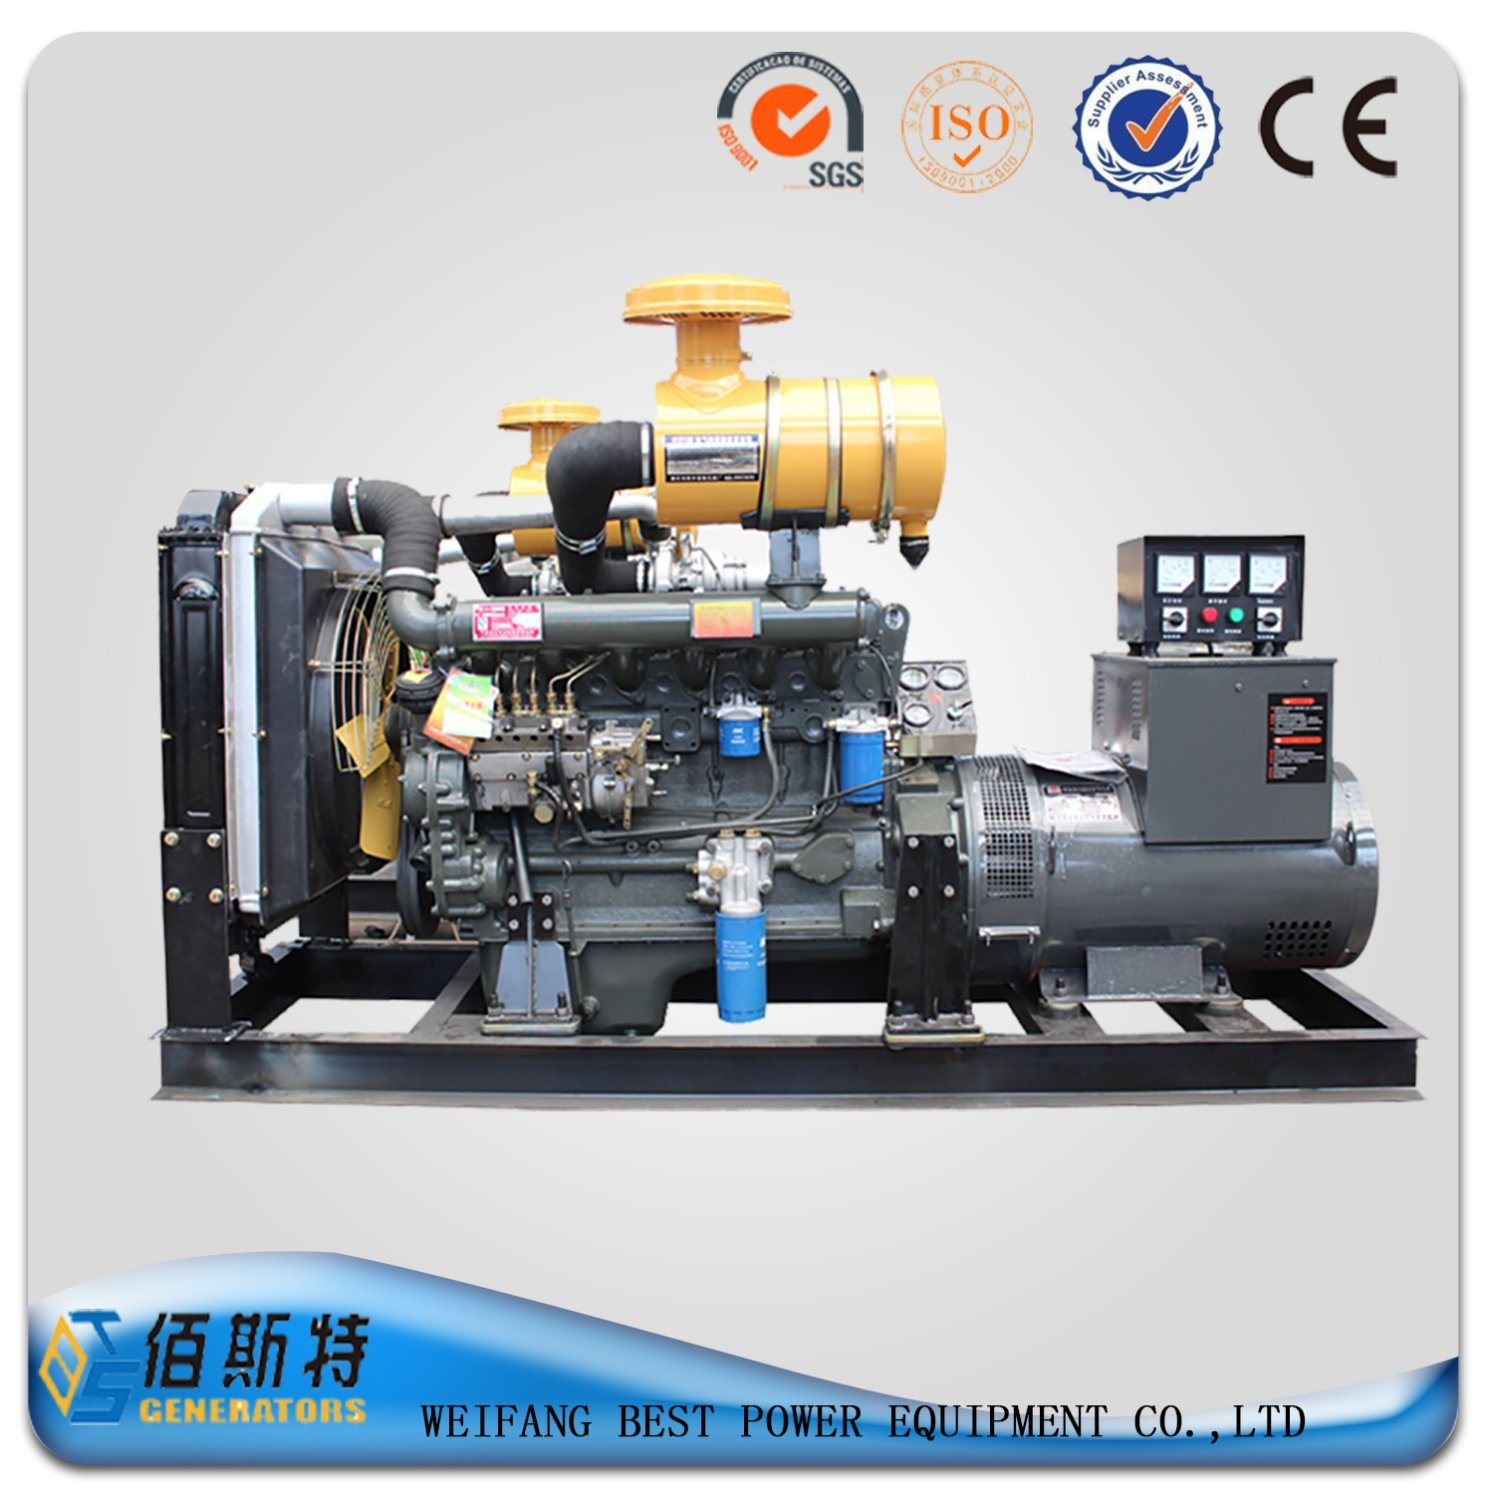 China 75kw Water Cooled Diesel Engine Generator Set for Sale